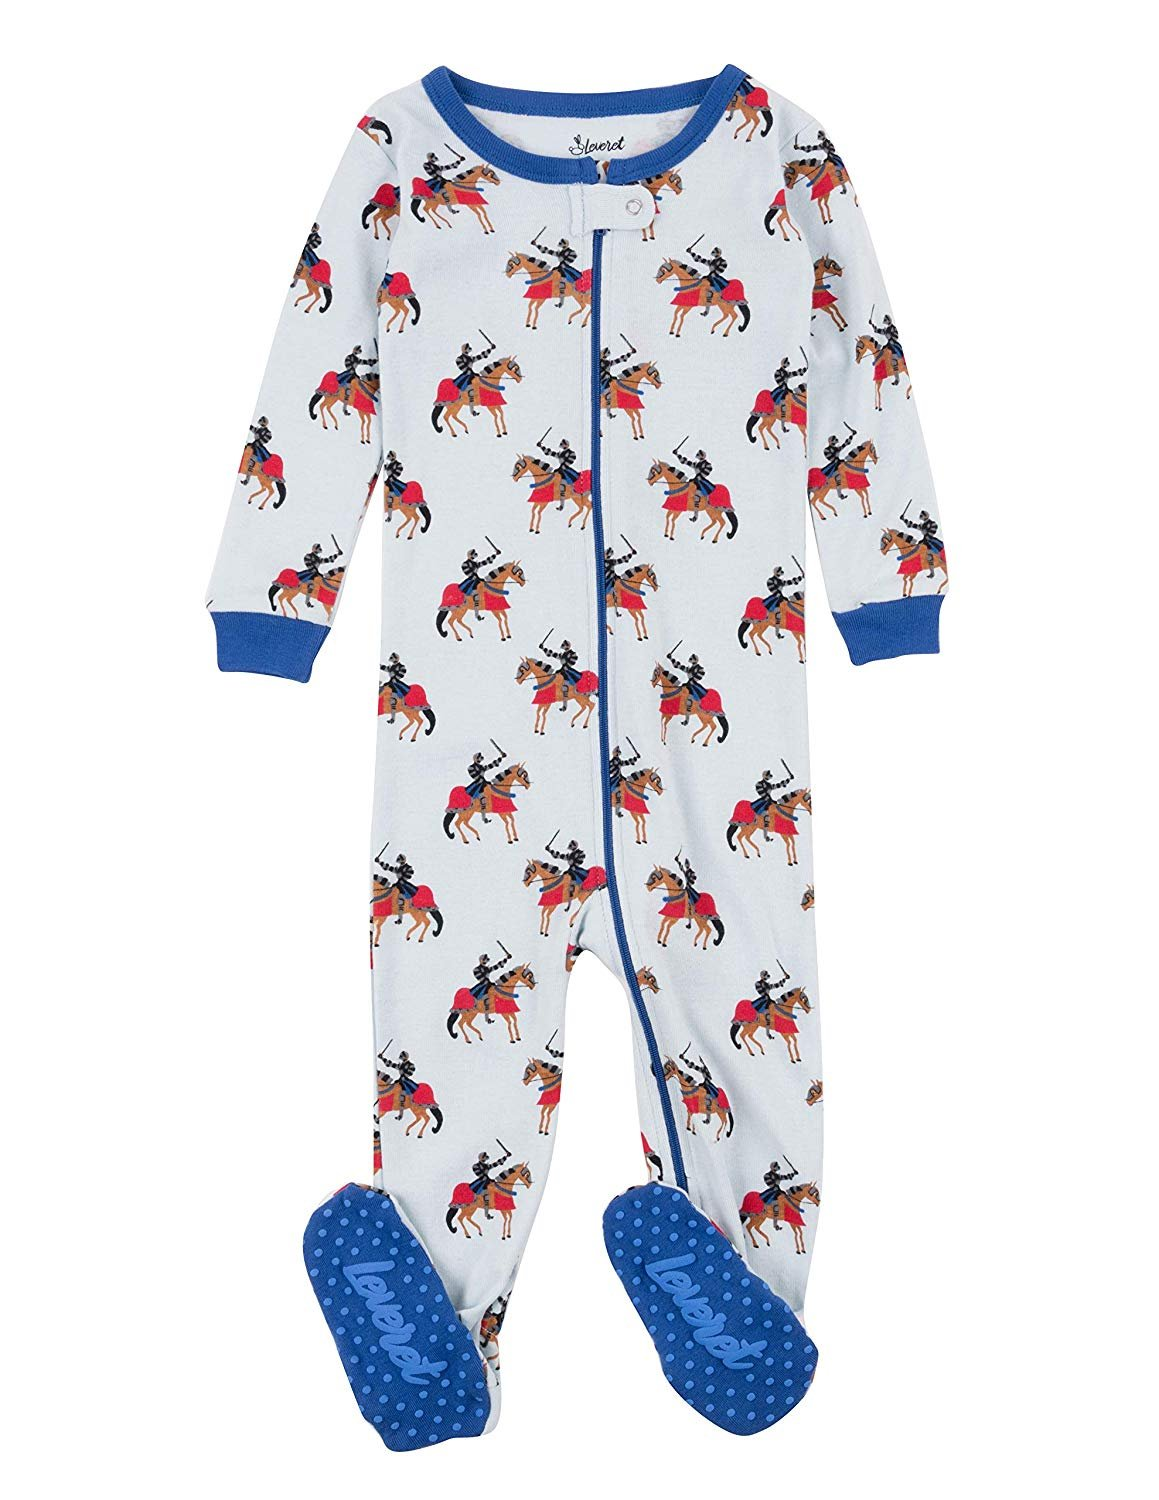 Leveret Kids Pajamas Baby Boys Girls Footed Pajamas Sleeper 100% Cotton (Knight, Size 18-24 Months)